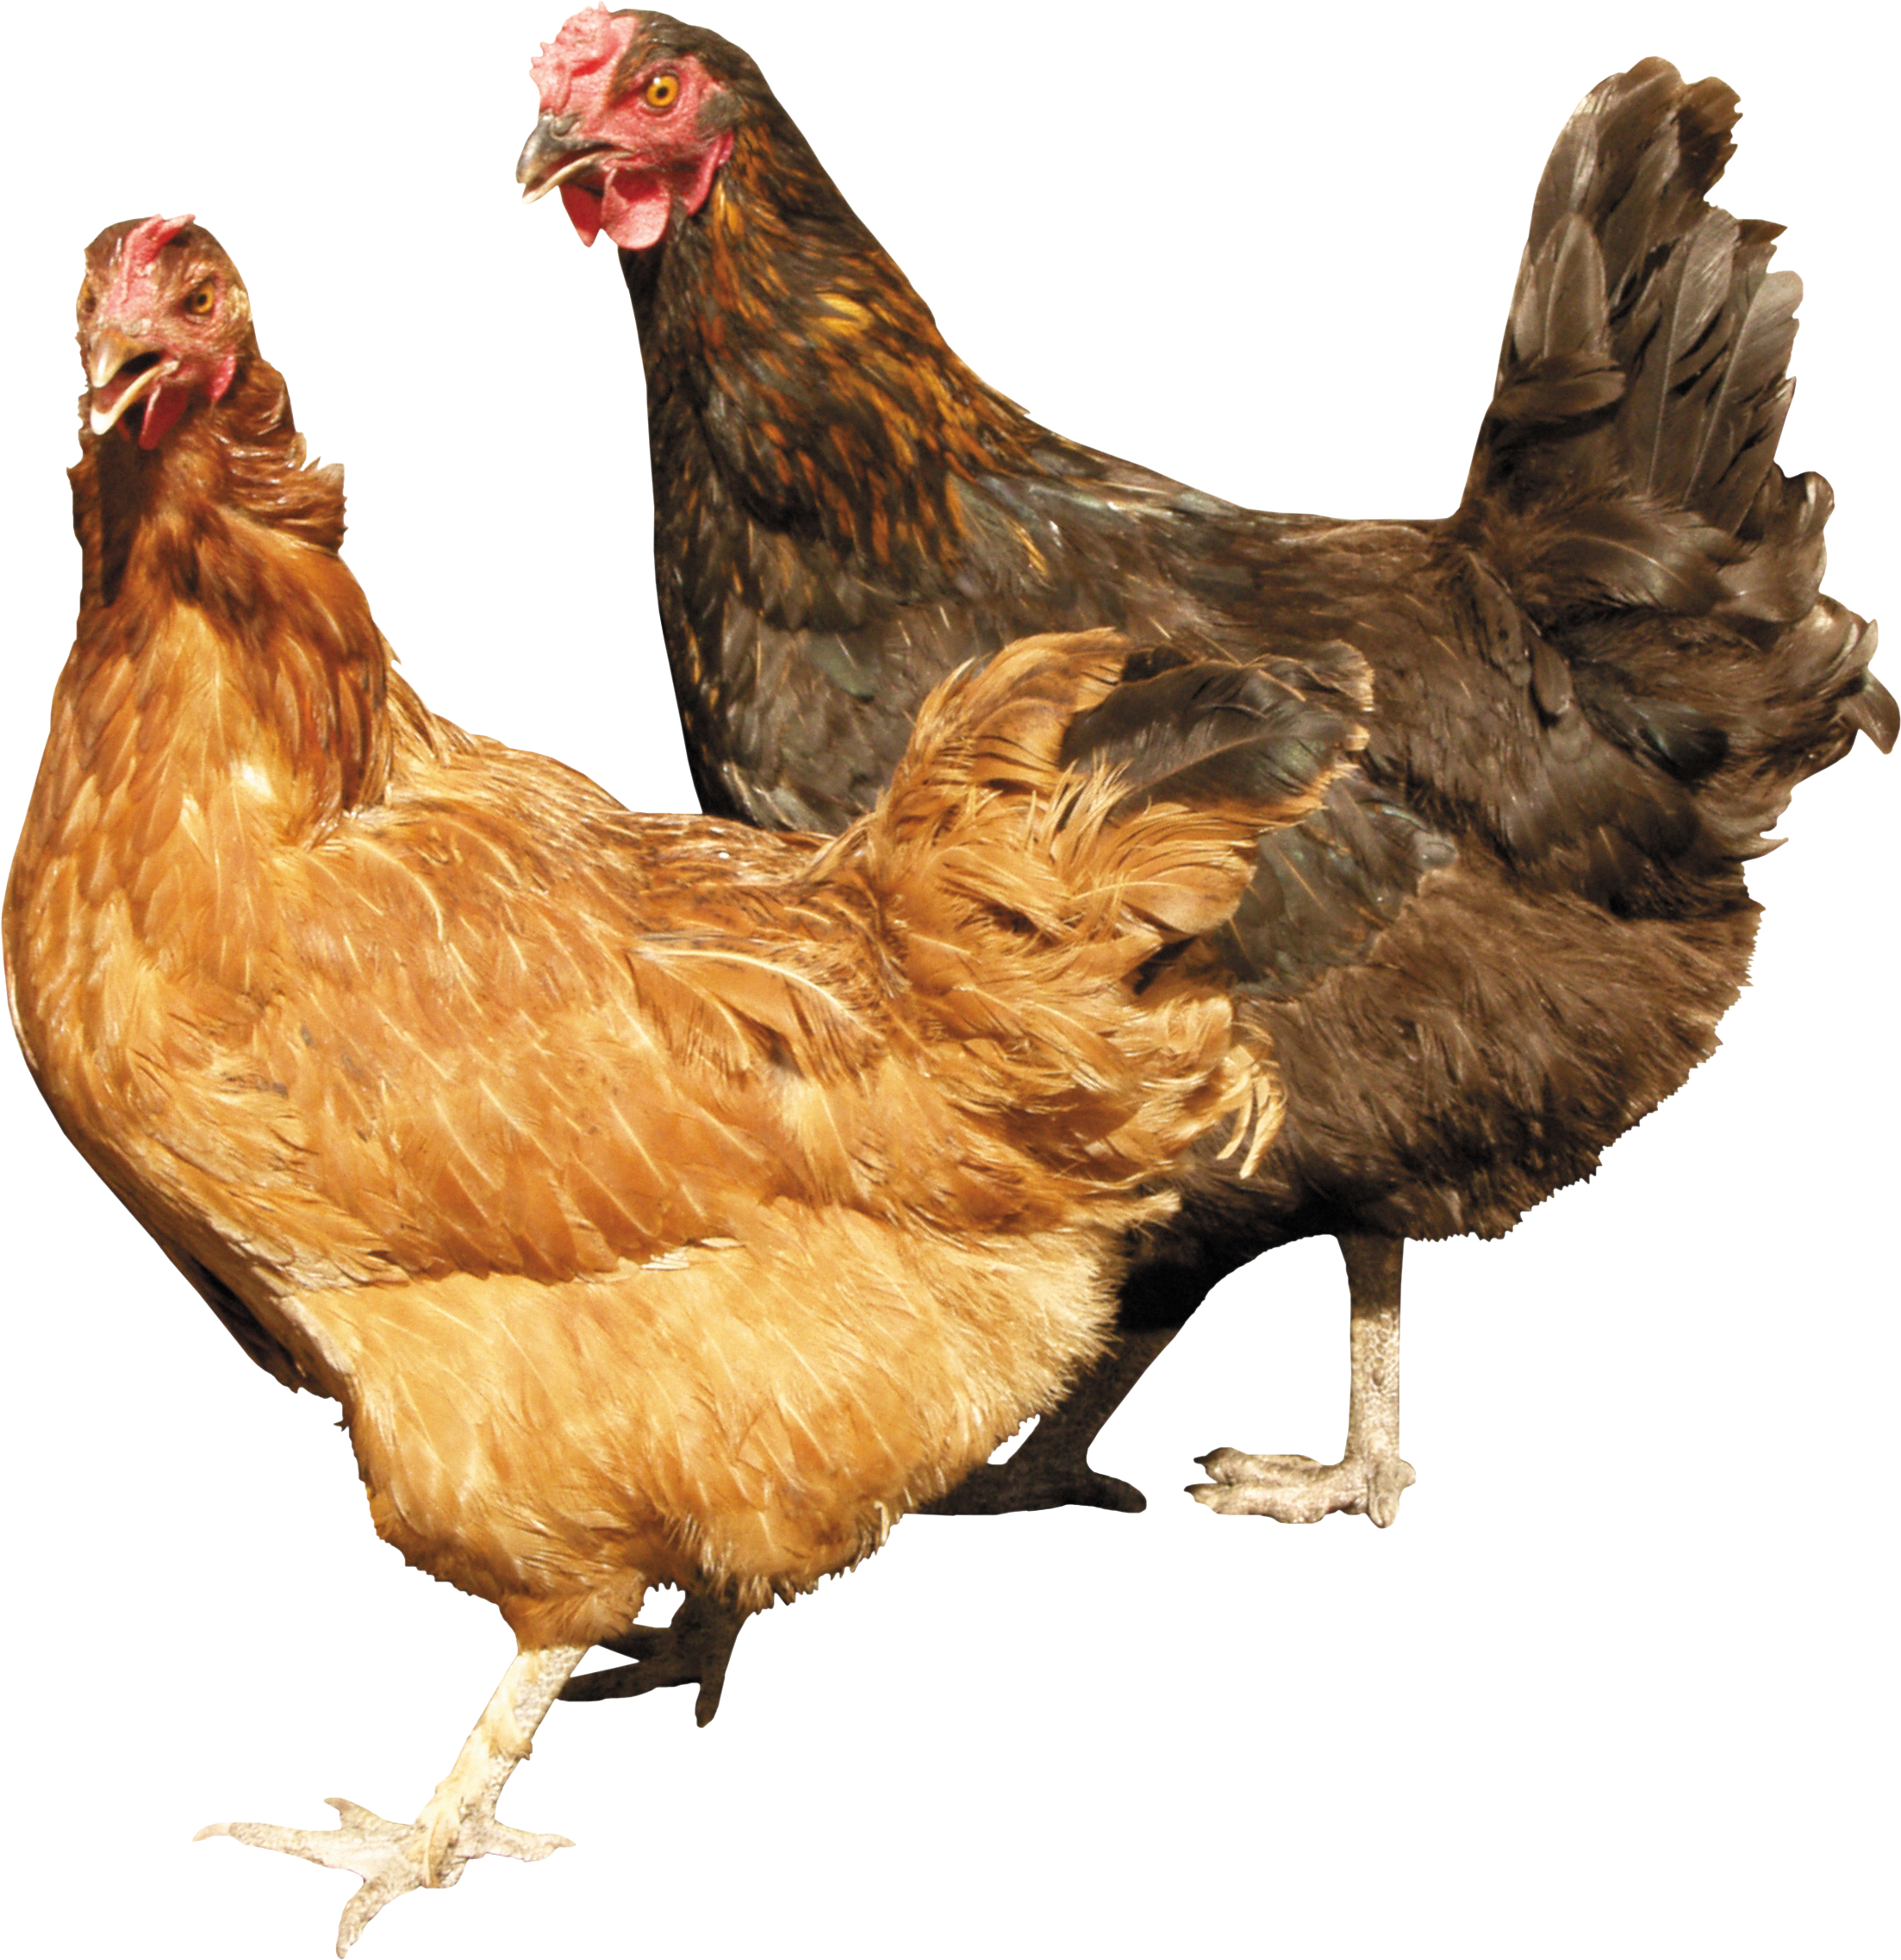 Chicken png image. Two chickens standing right